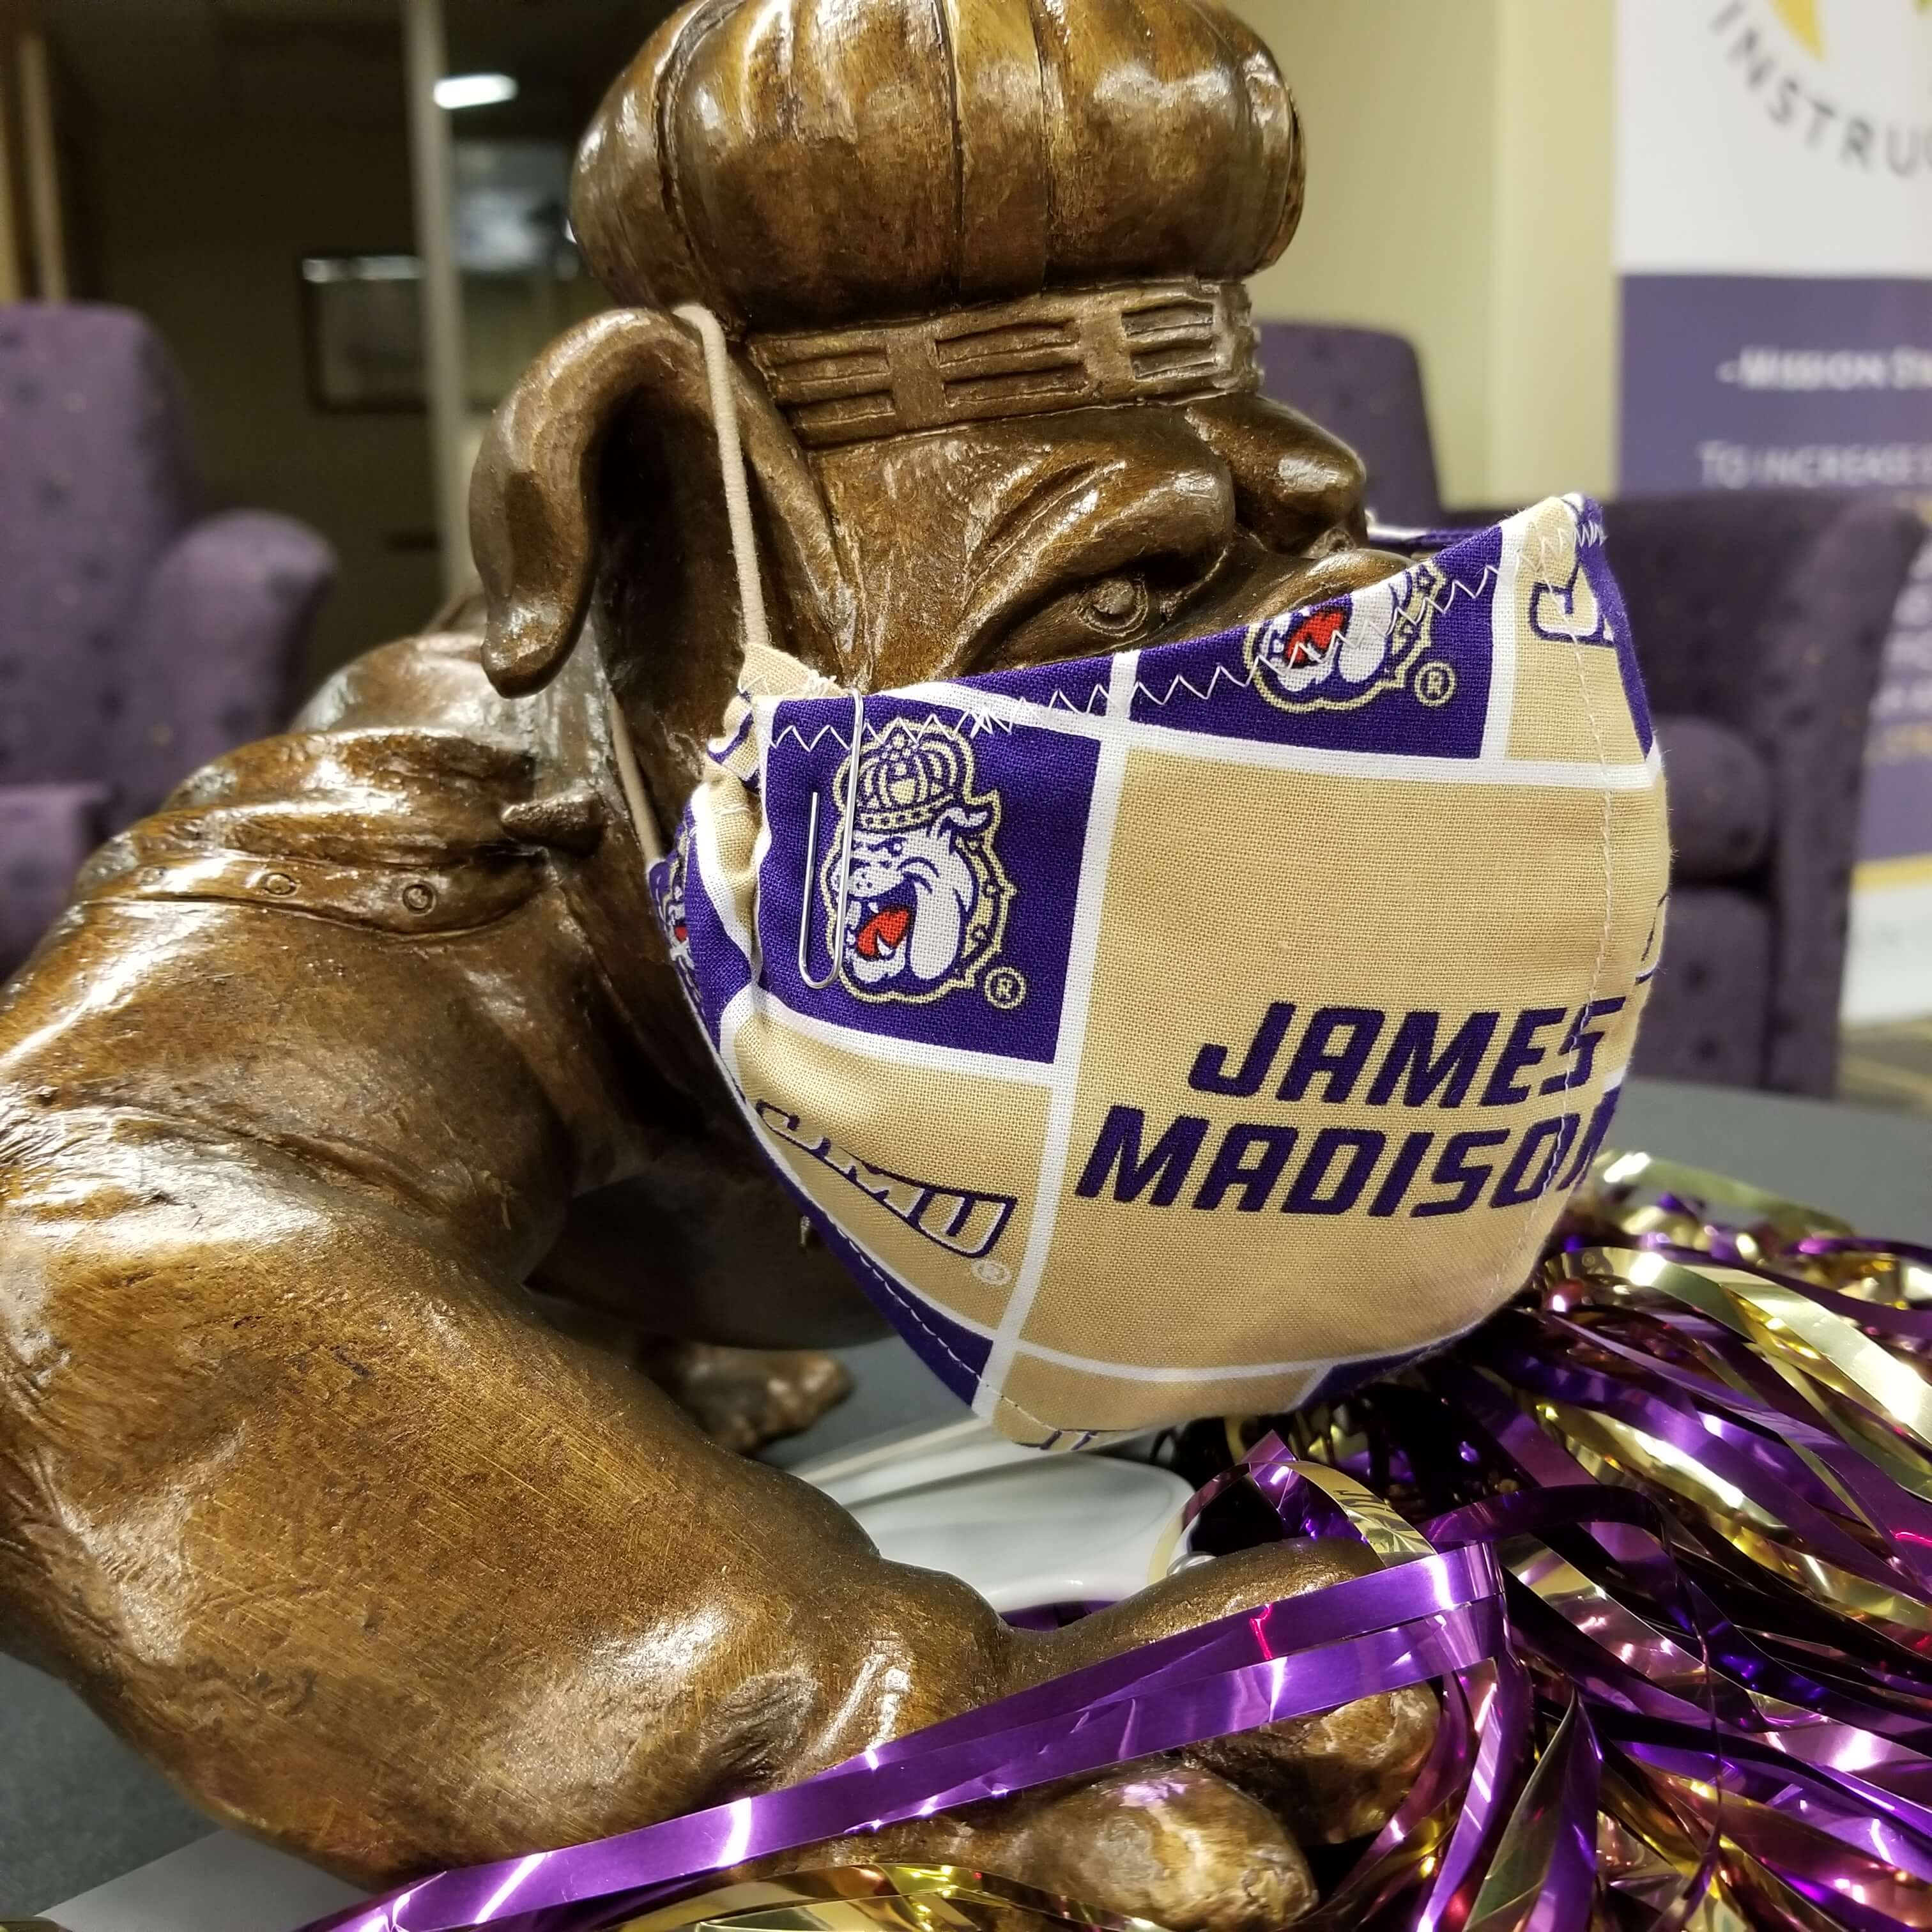 The duke dog with a JMU themed cloth mask